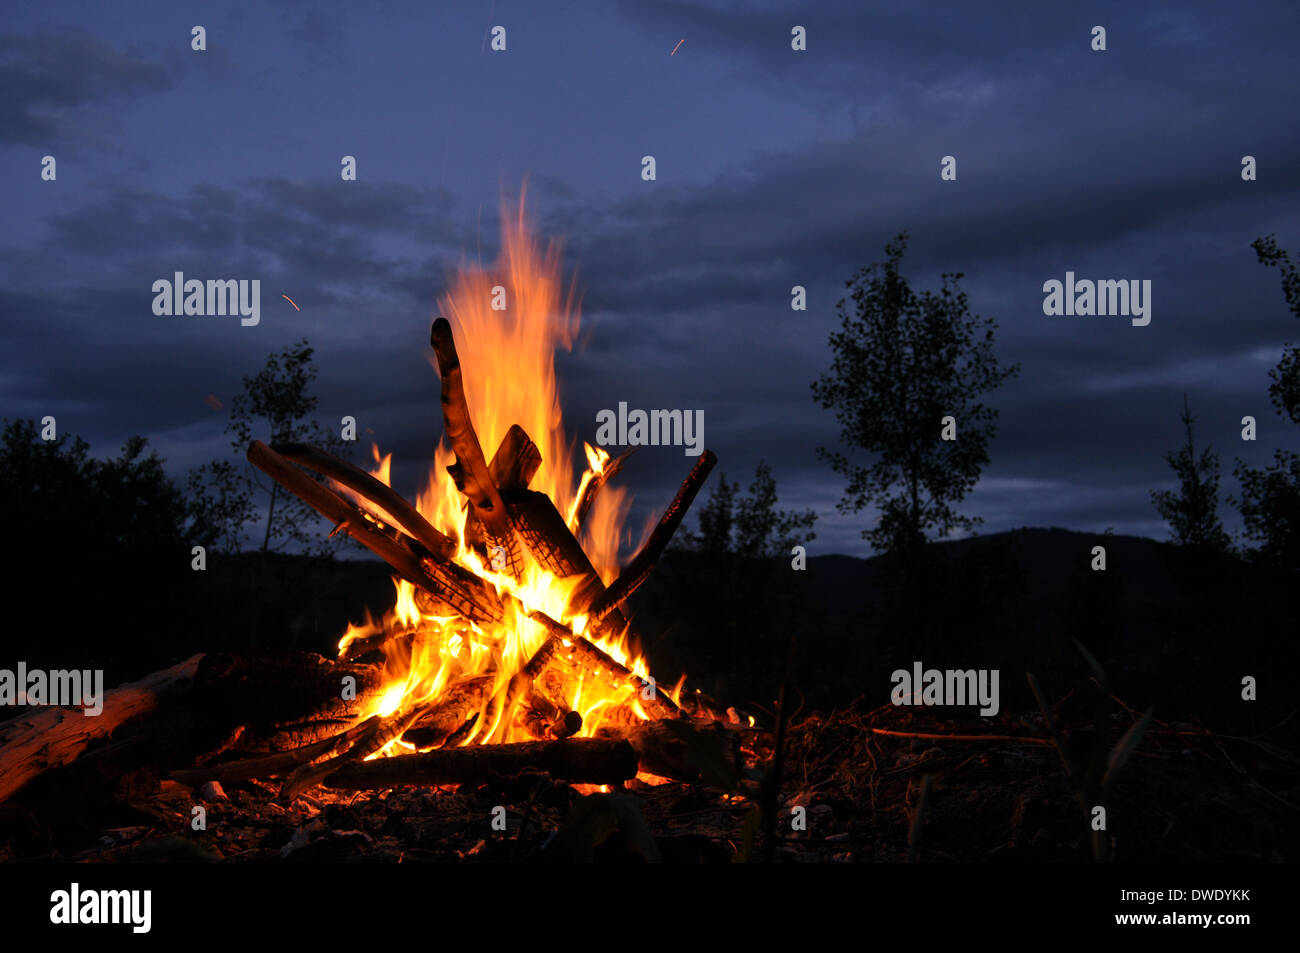 Bonfire, campfire in the forest, dusk - Stock Image